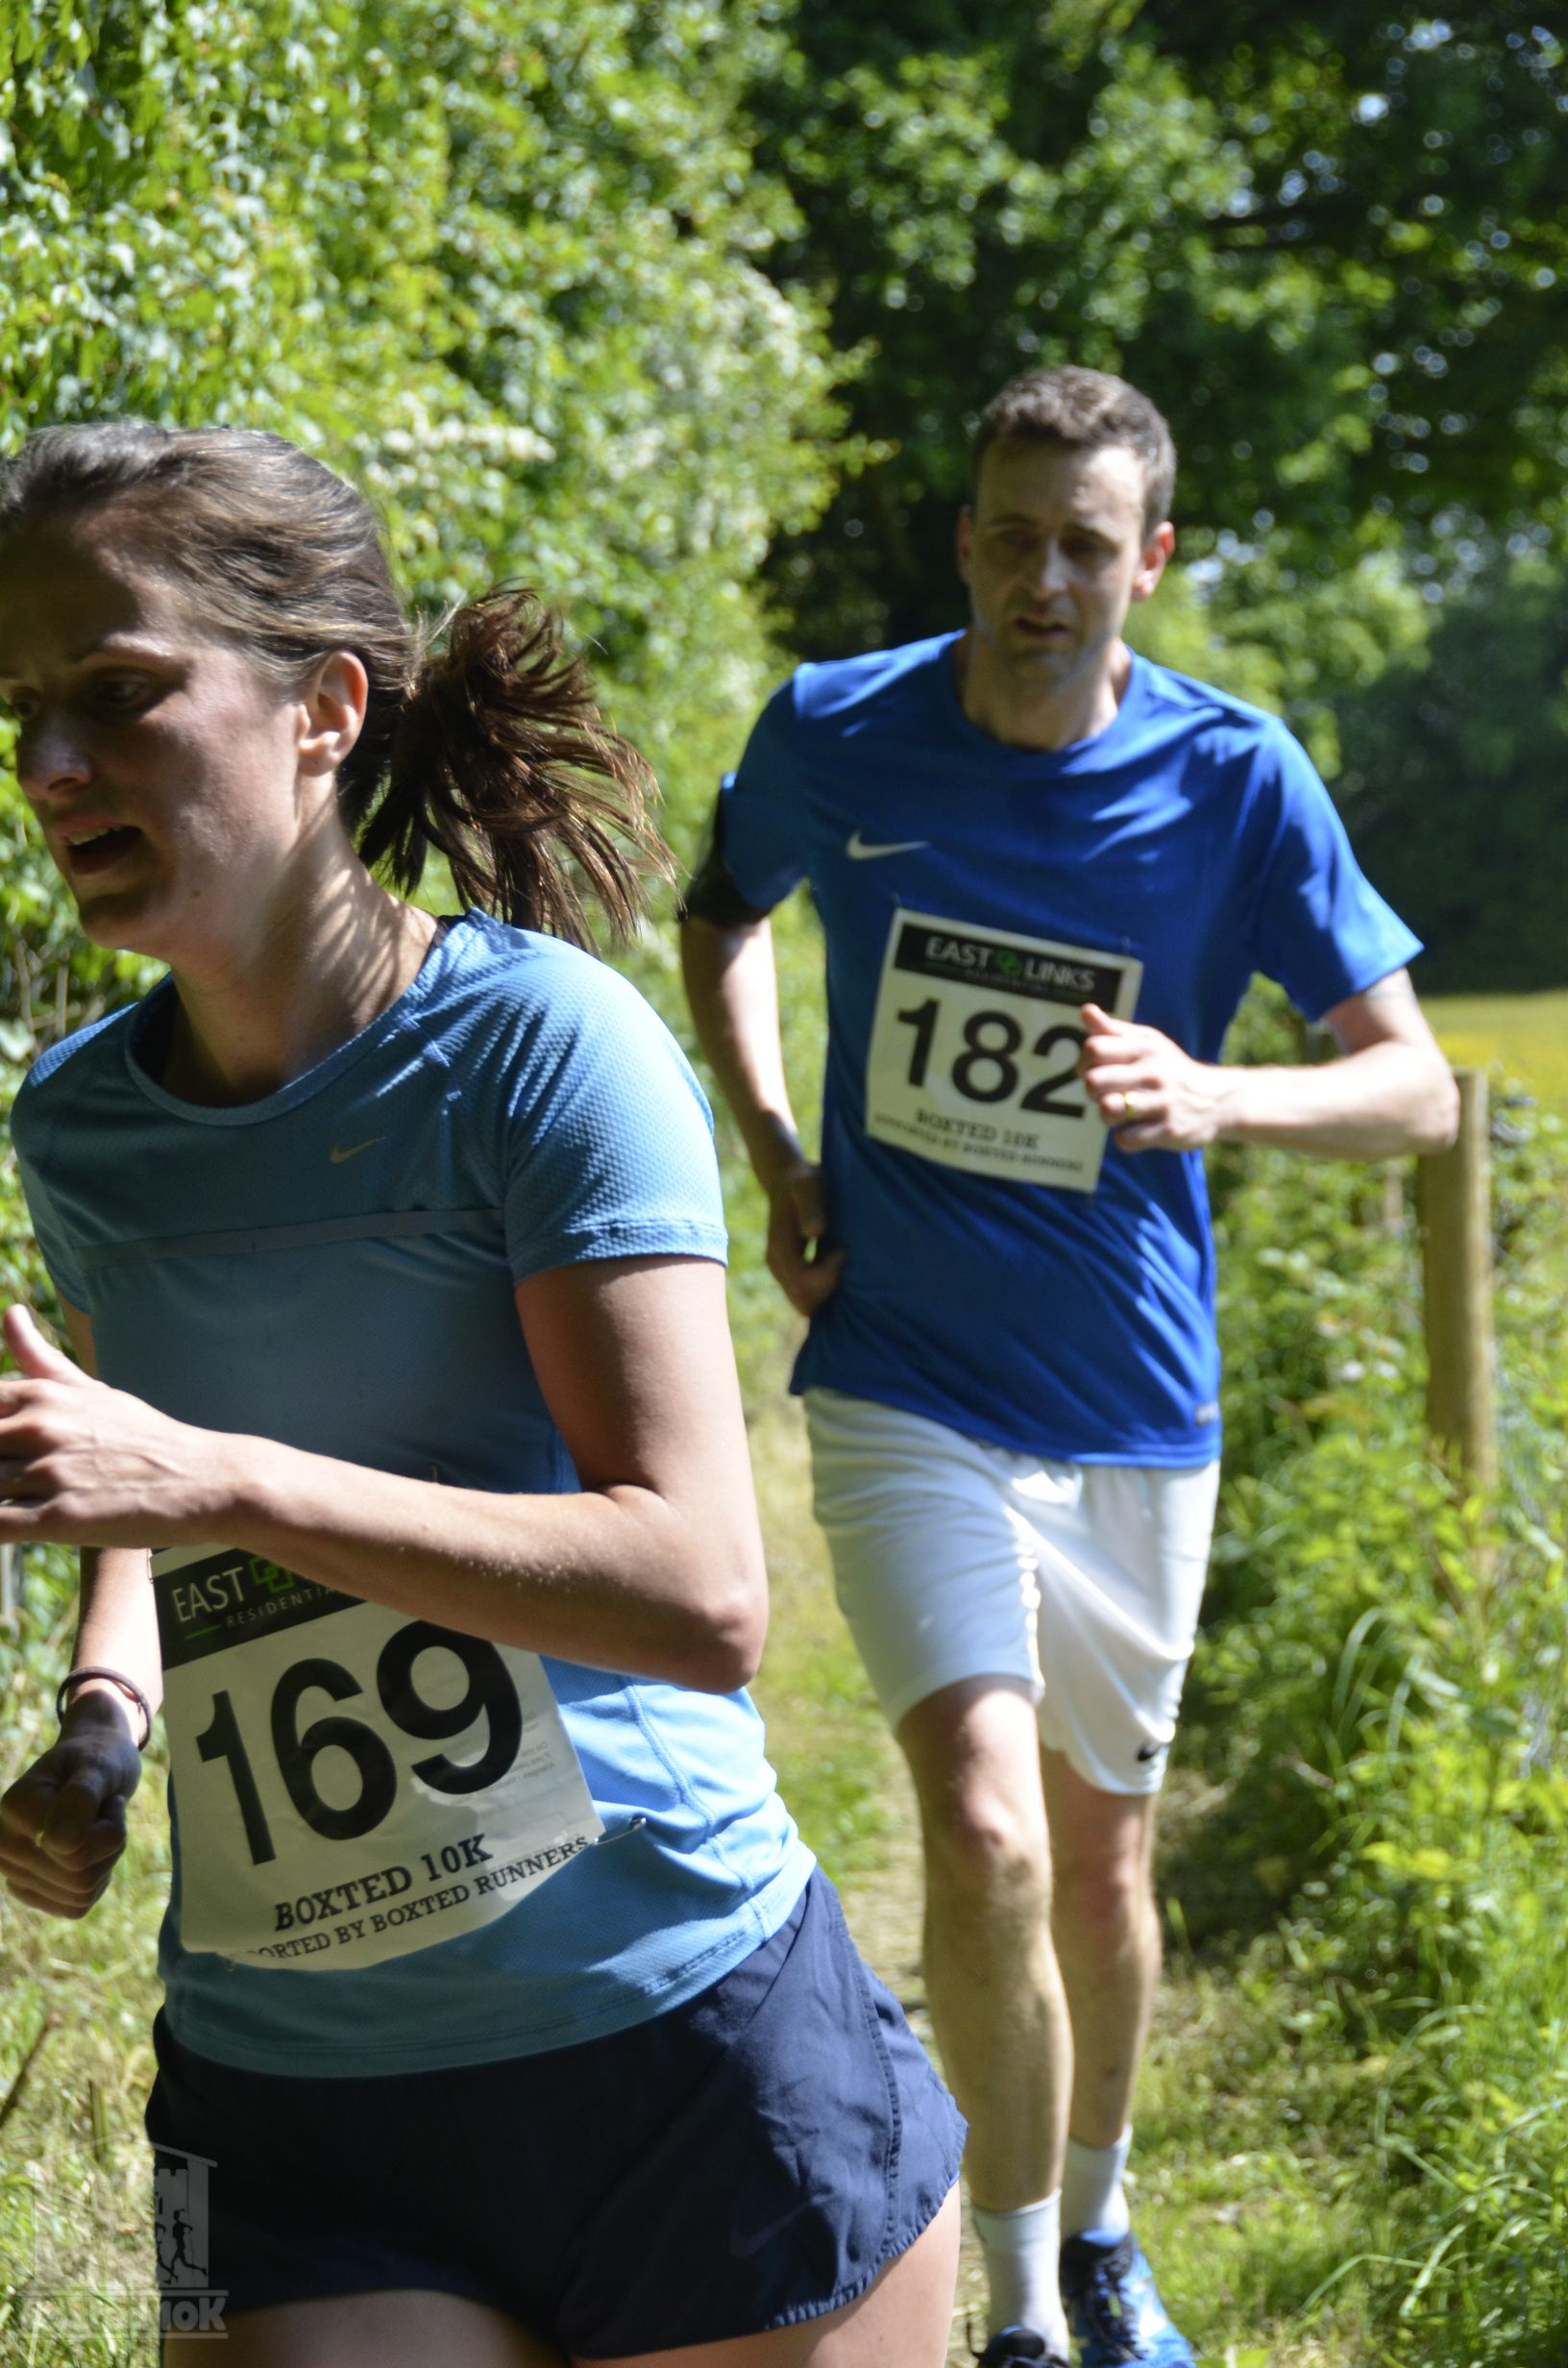 Boxted10k-00196